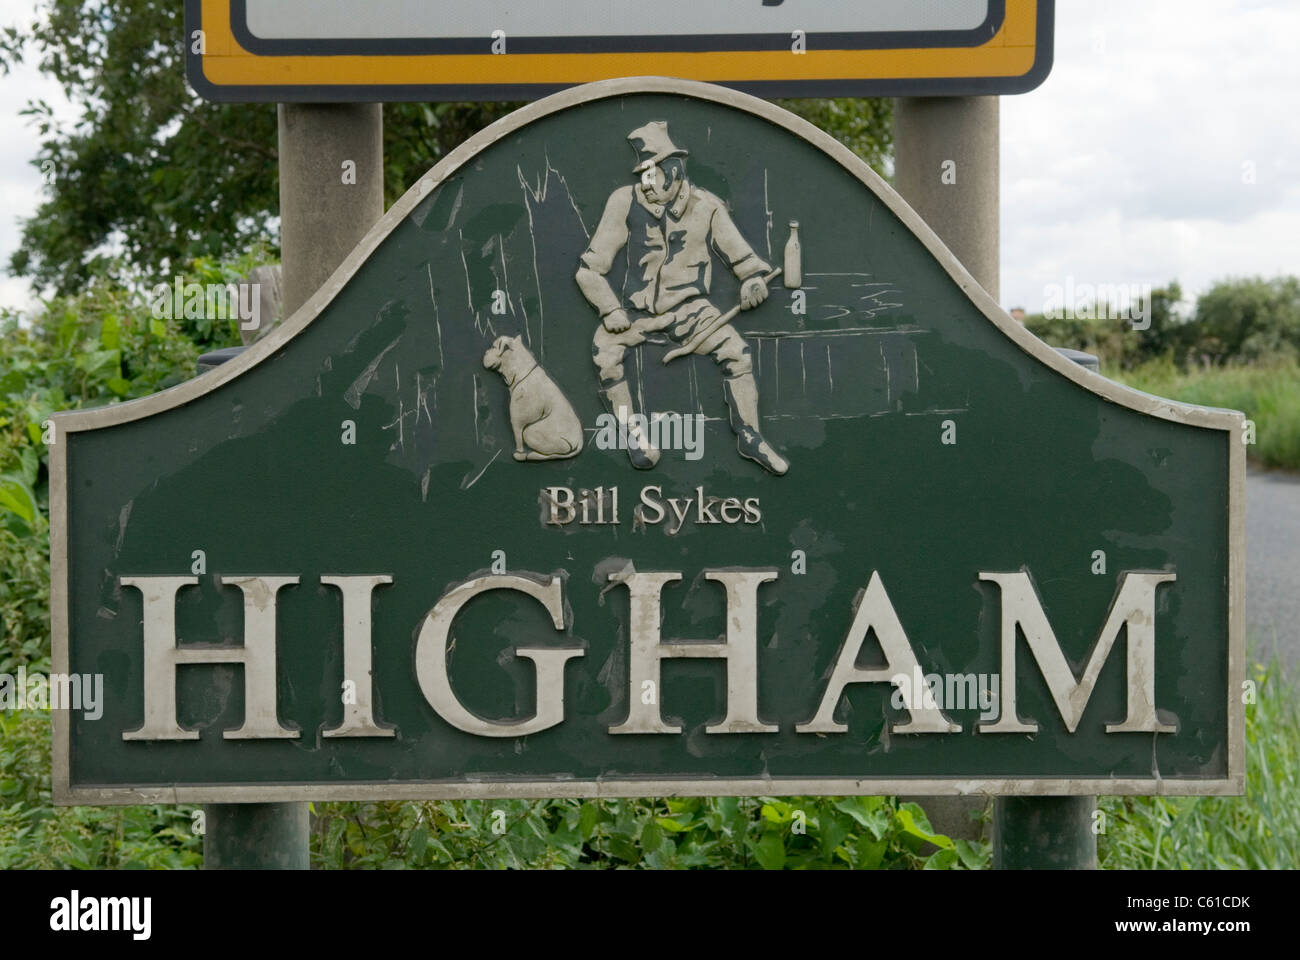 Higham Kent, UK. Charles Dickens lived here in Gads Hill Place House. Bill Sykes sign entering the village. - Stock Image